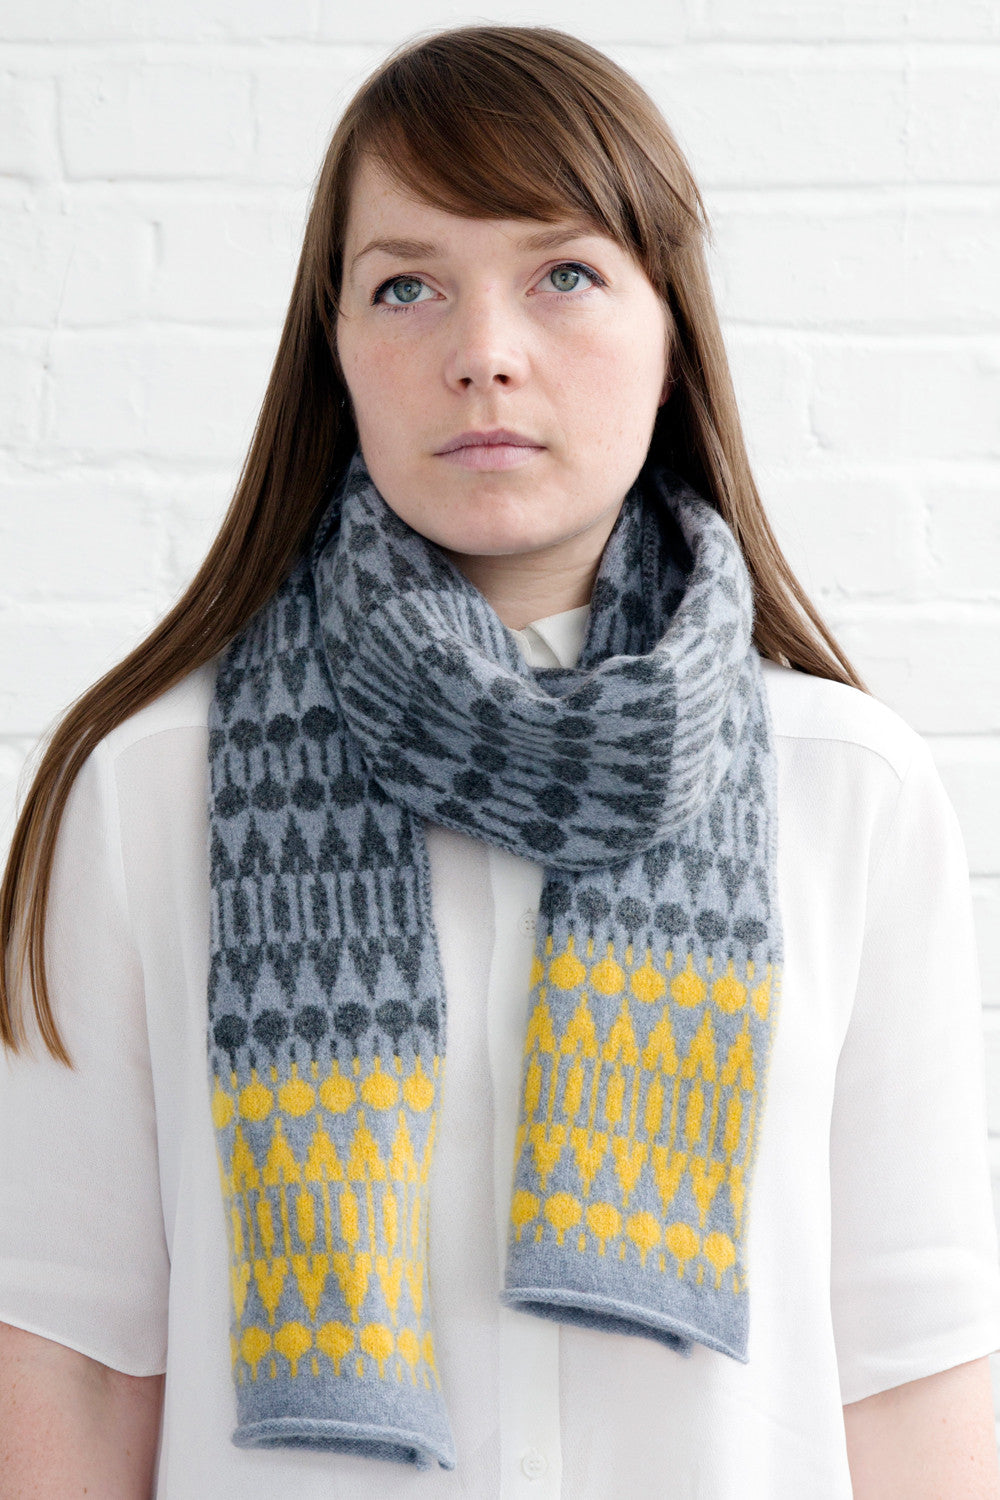 Folk lambswool knitted scarf in grey & yellow